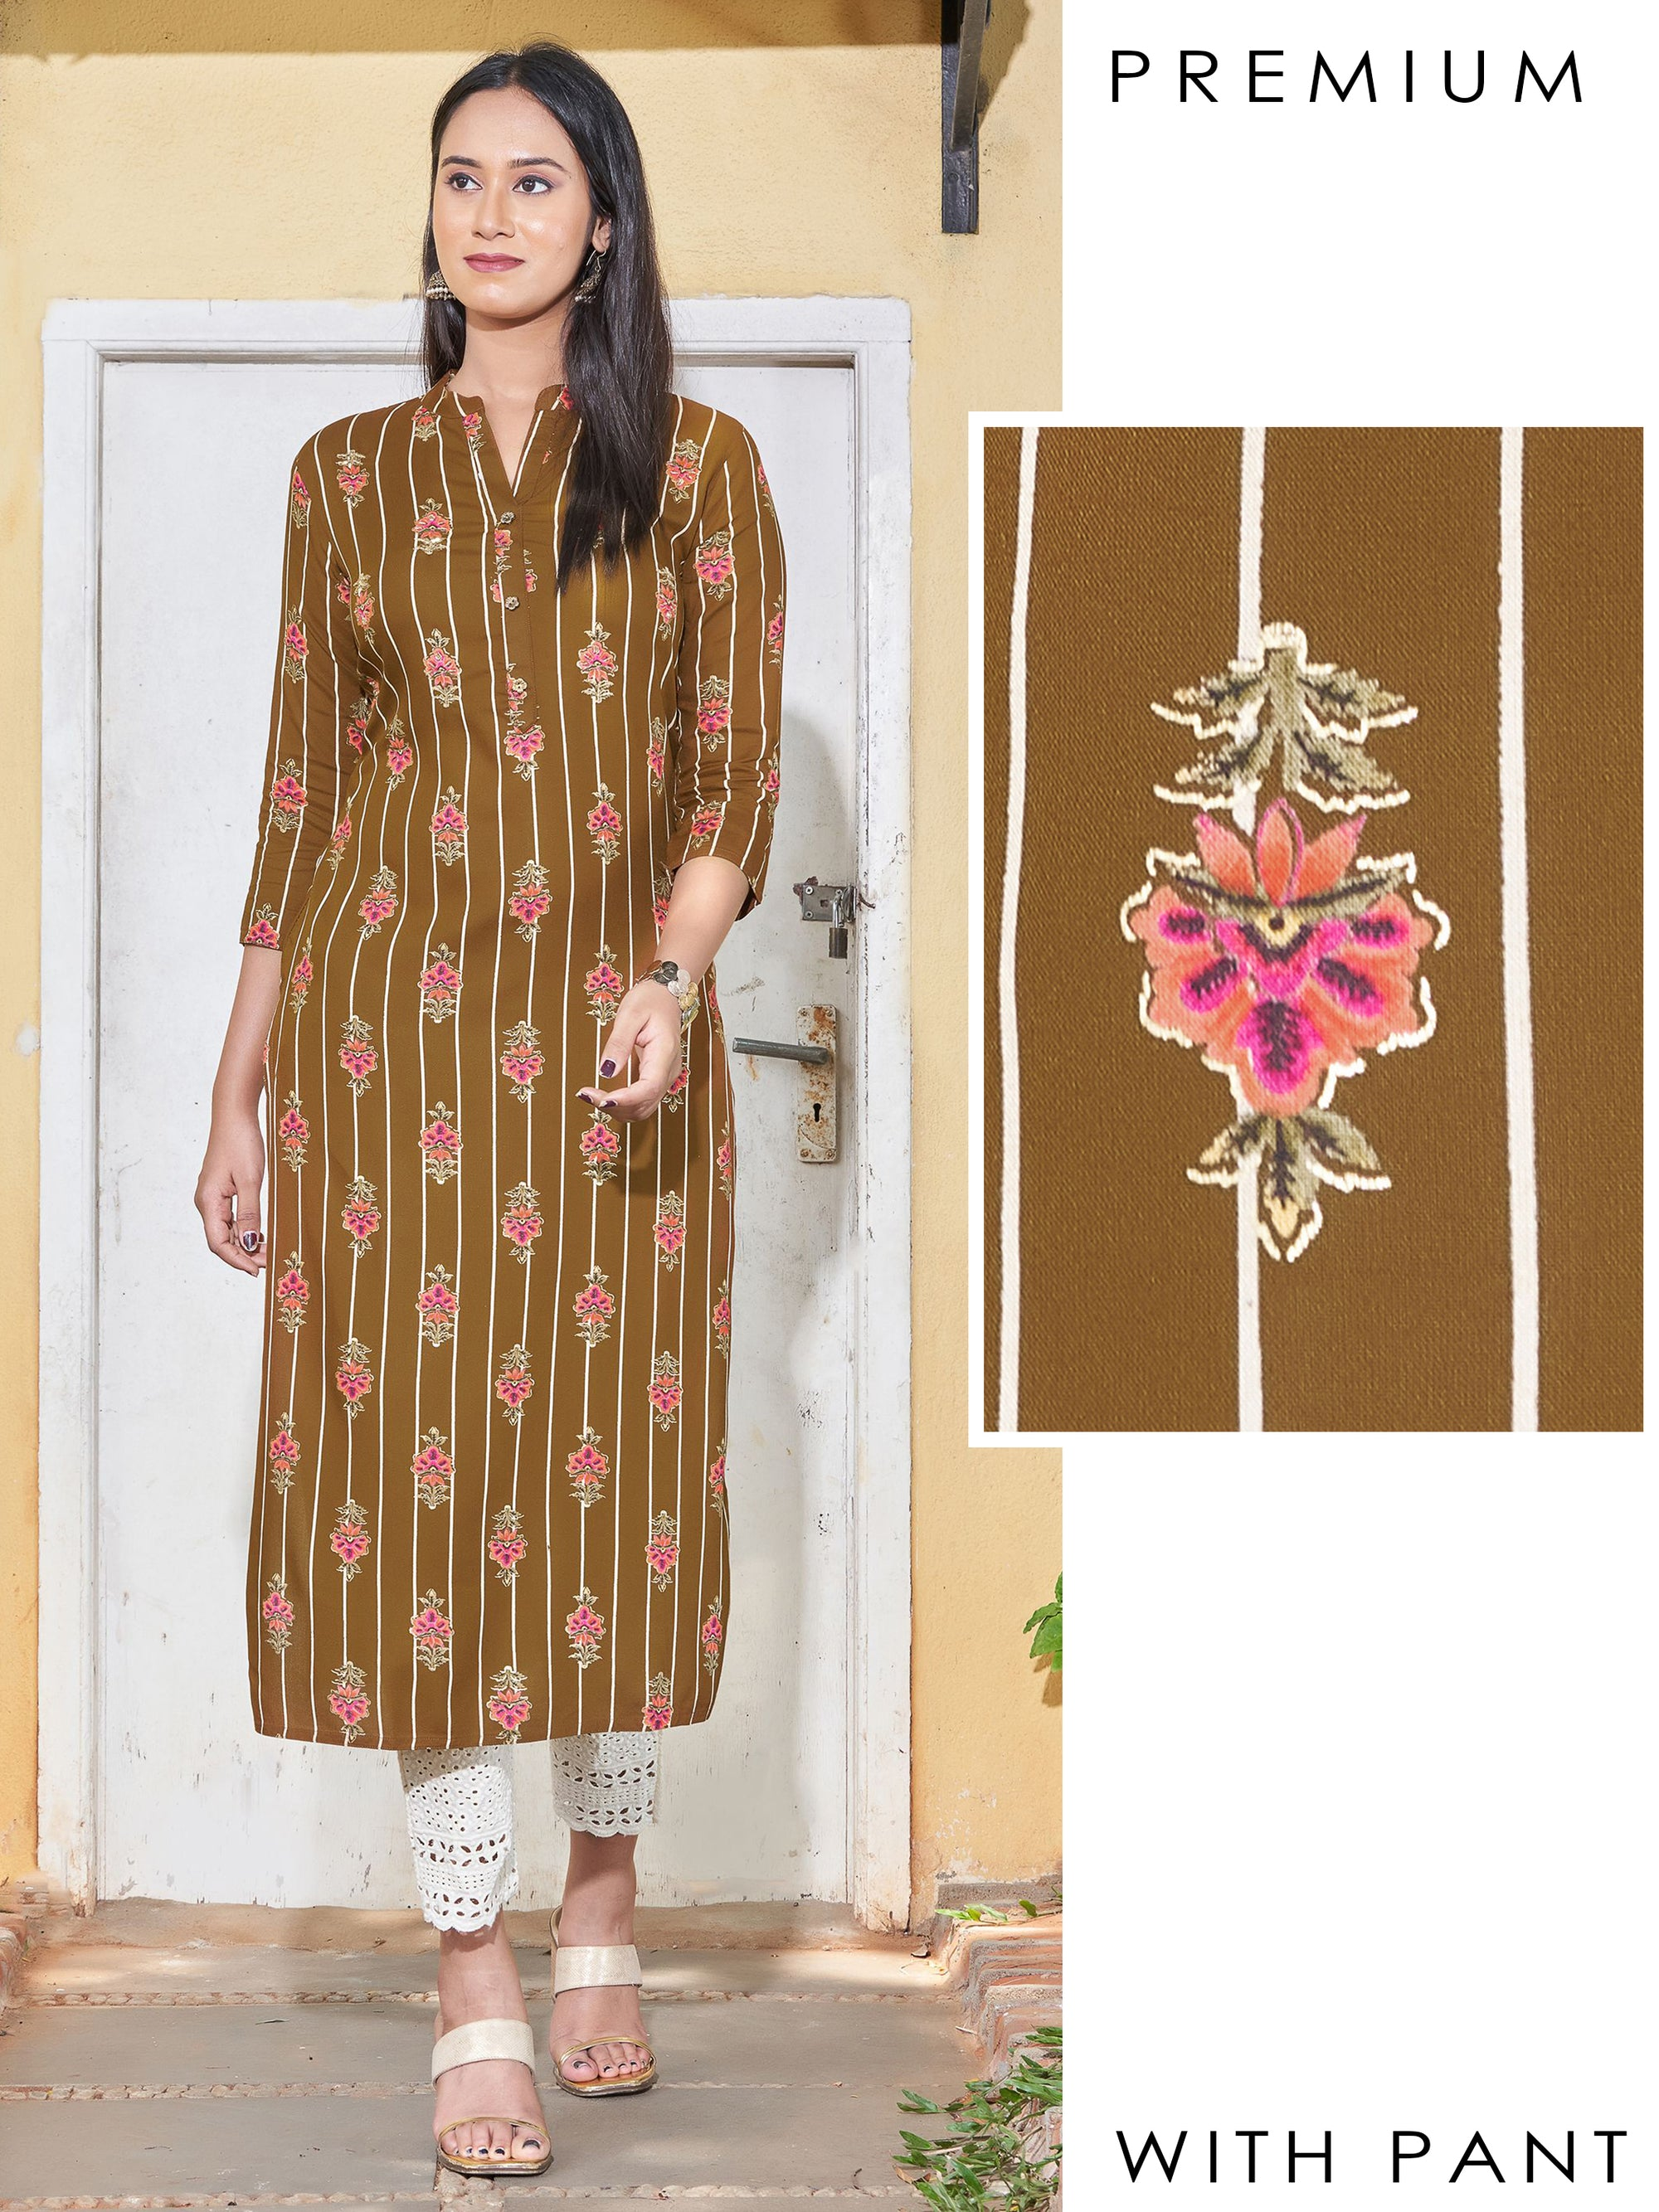 Khari Floral Printed & Cutdana Detailed Kurti with Cut work Embroidered Pant